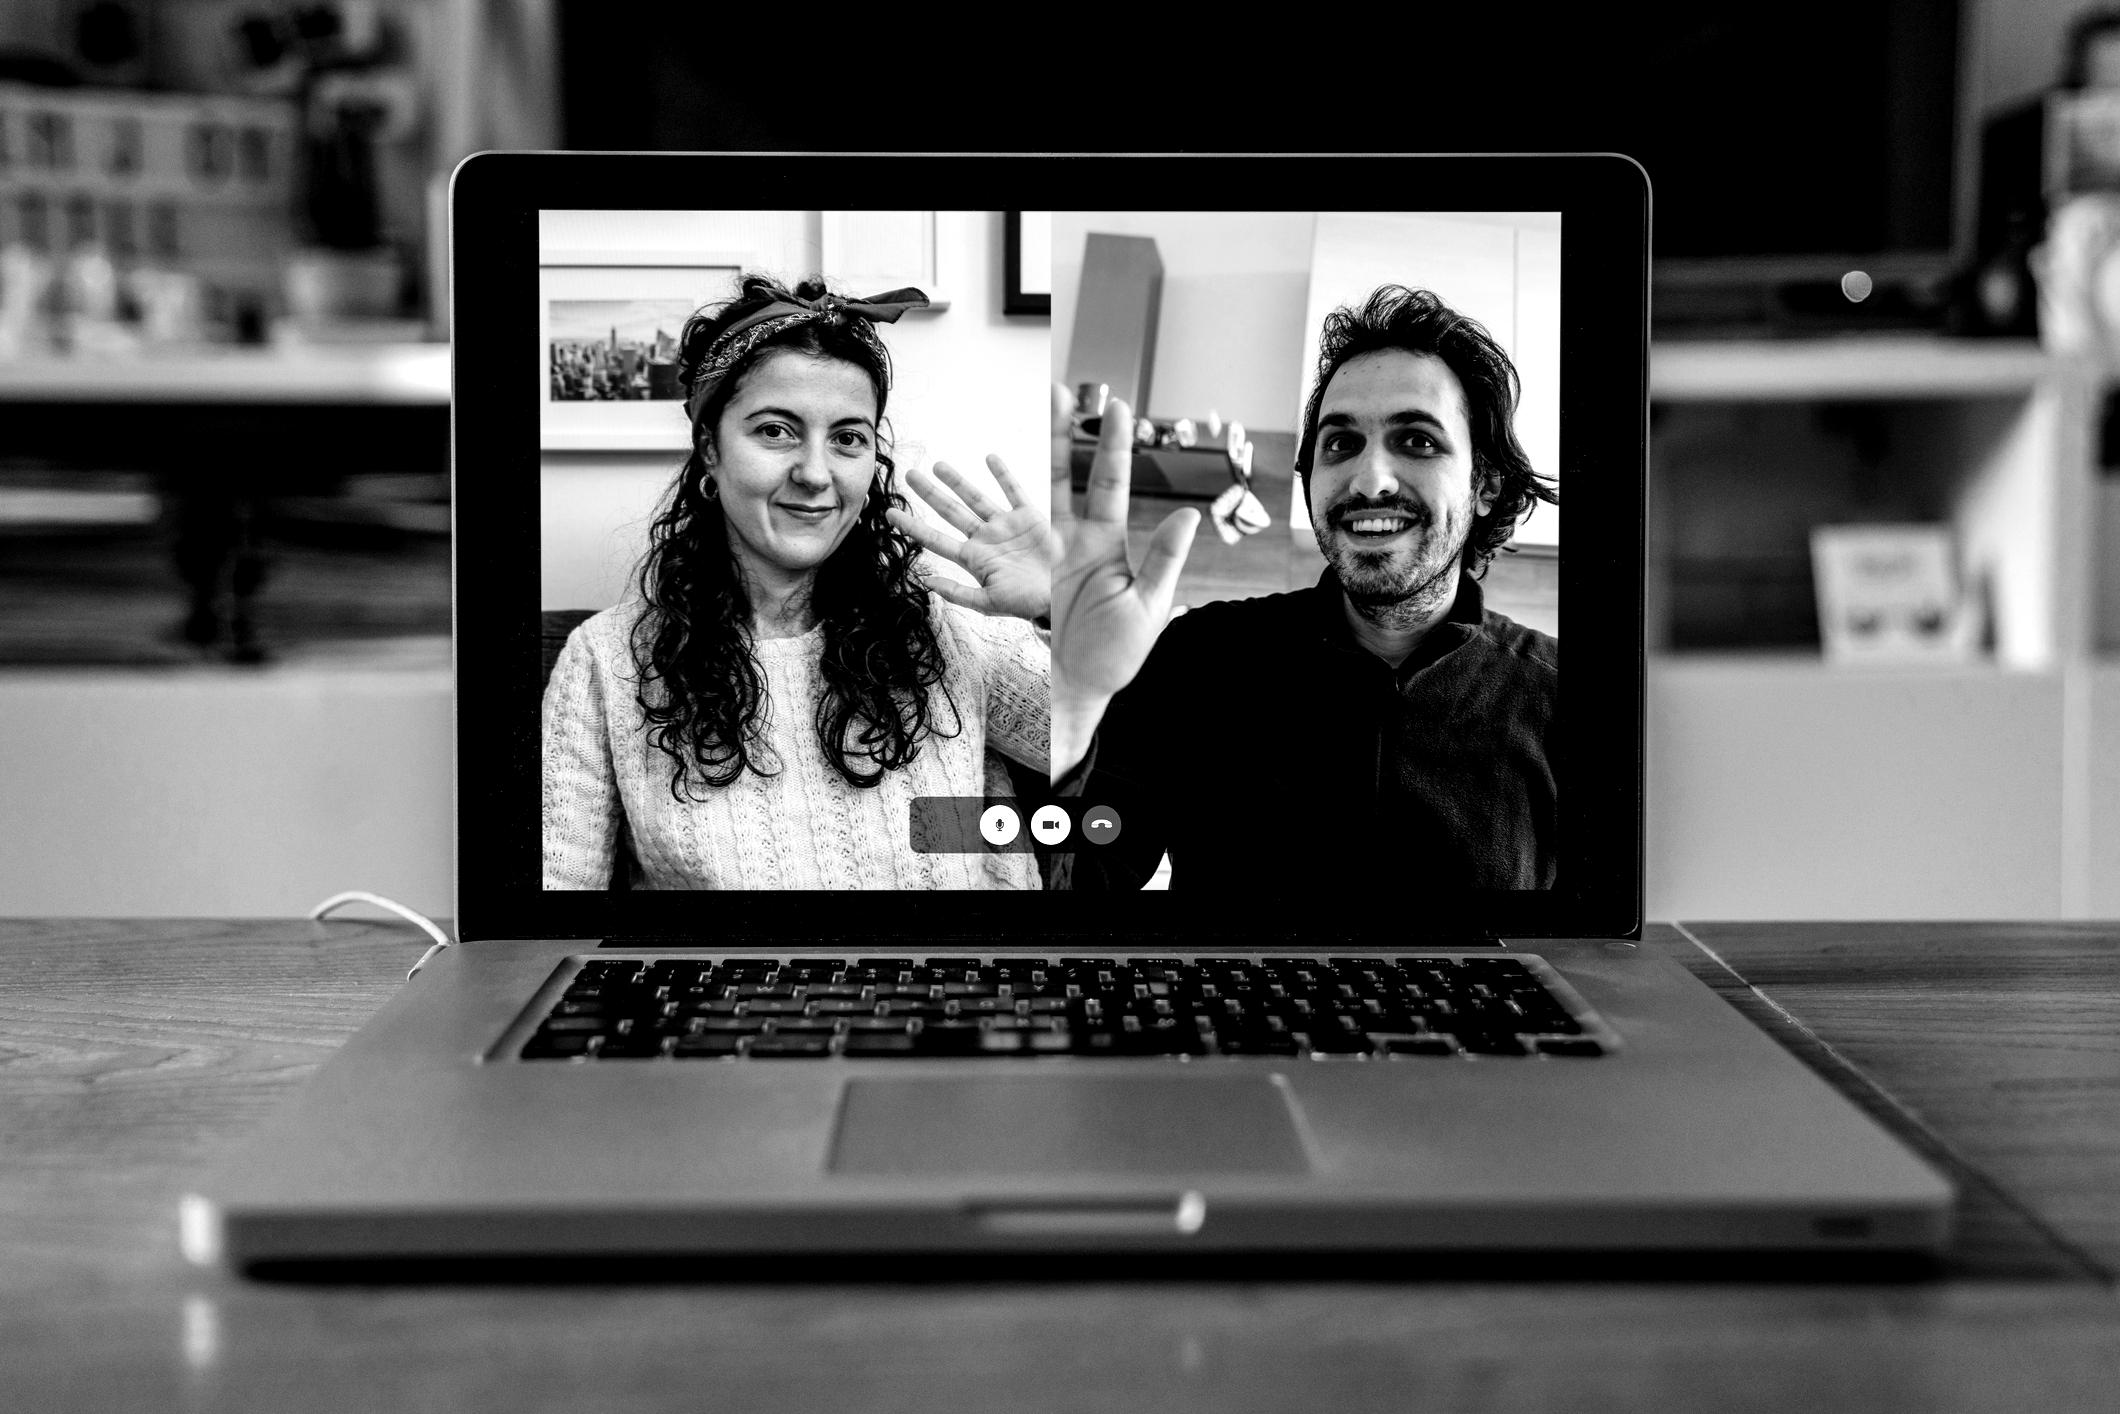 7 ways to alleviate video meeting fatigue